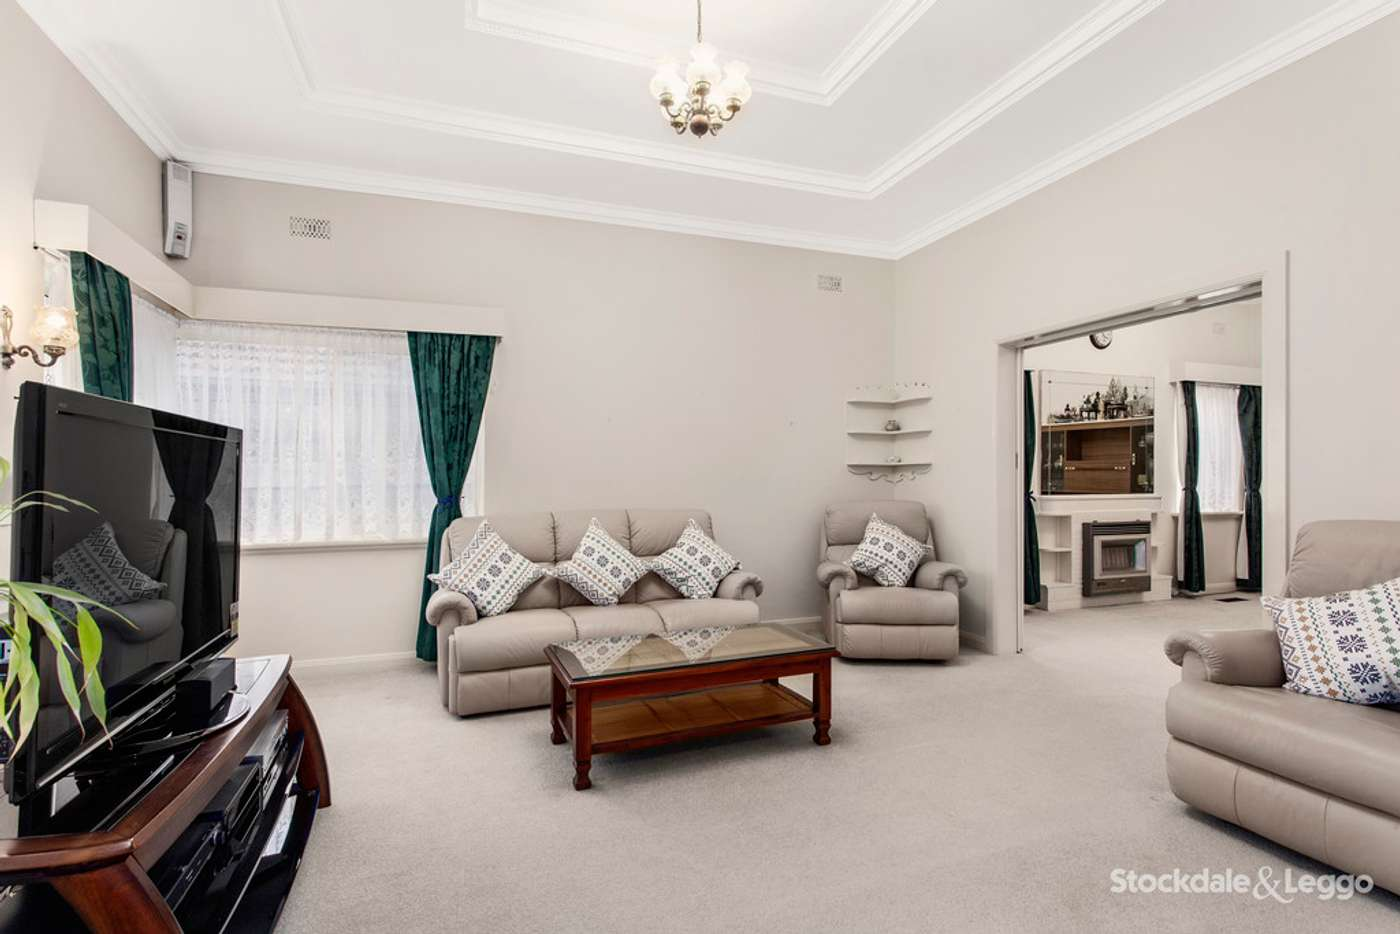 Sixth view of Homely house listing, 14 Innellan Road, Murrumbeena VIC 3163